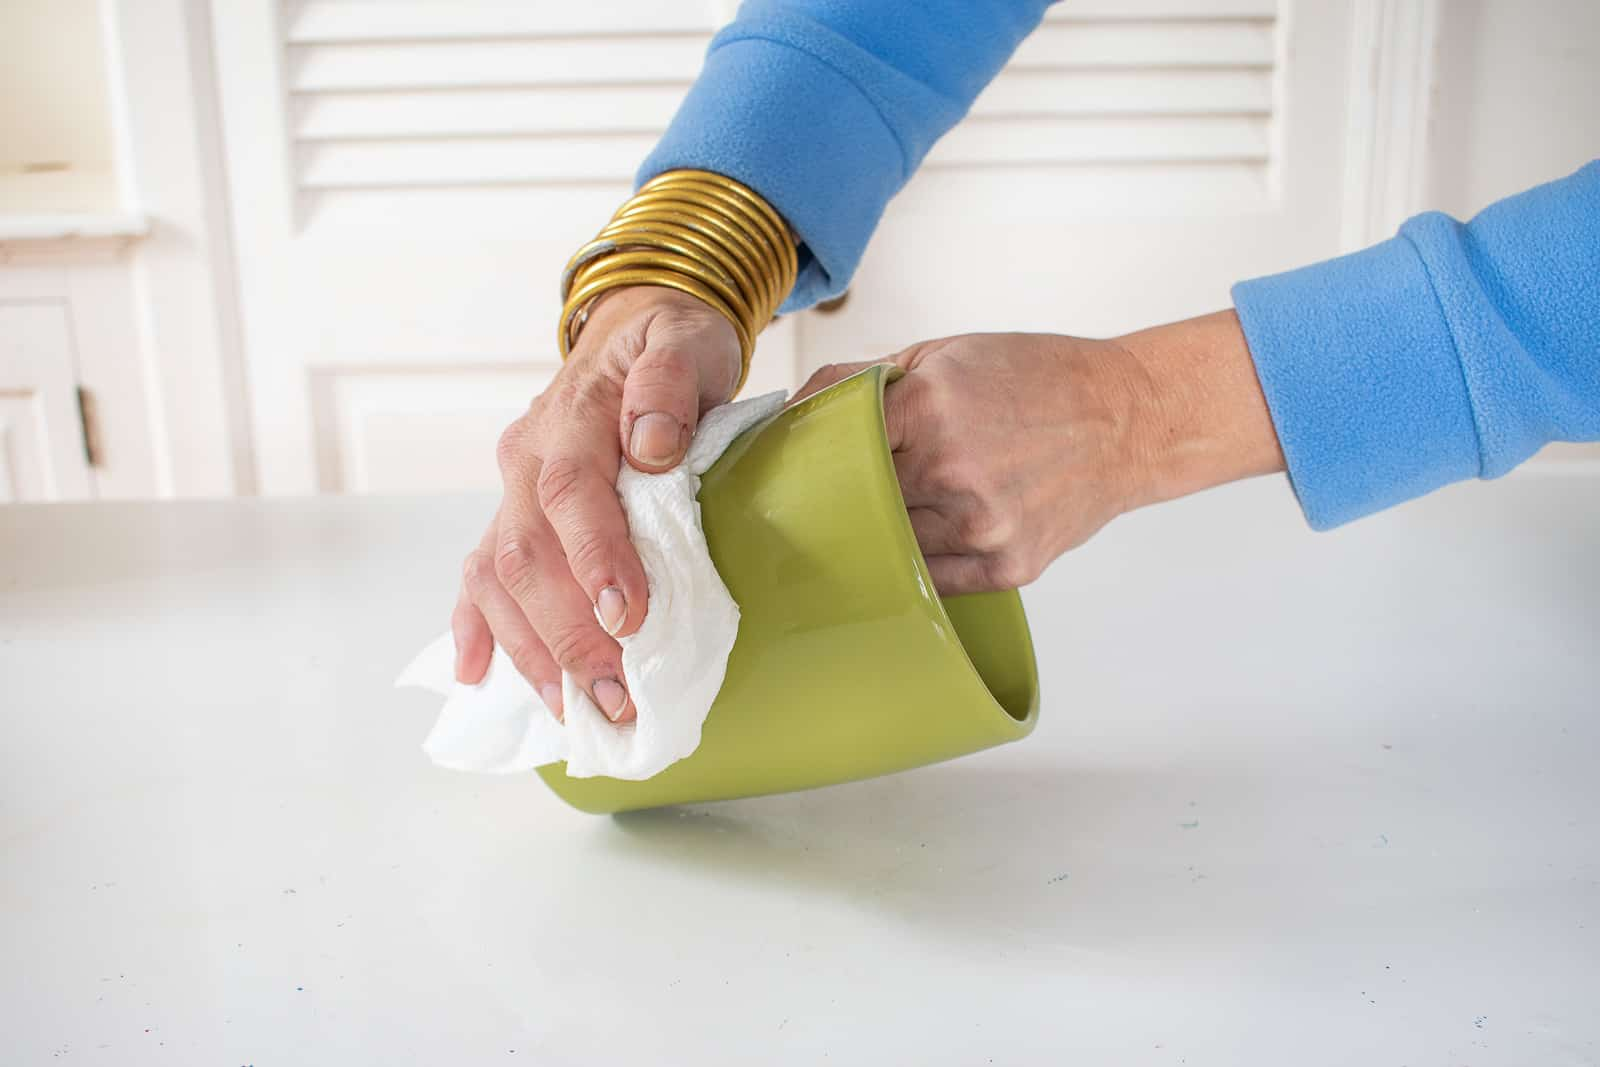 clean the surface of the pottery